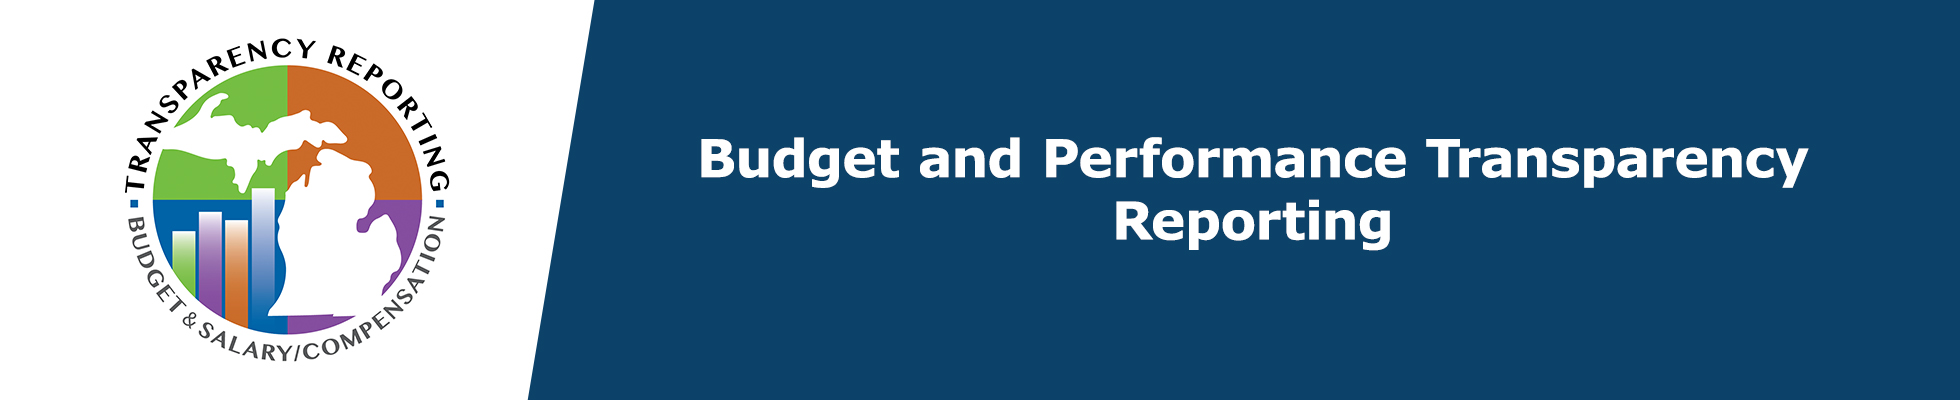 Budget and Performance Transparency Reporting Banner Logo